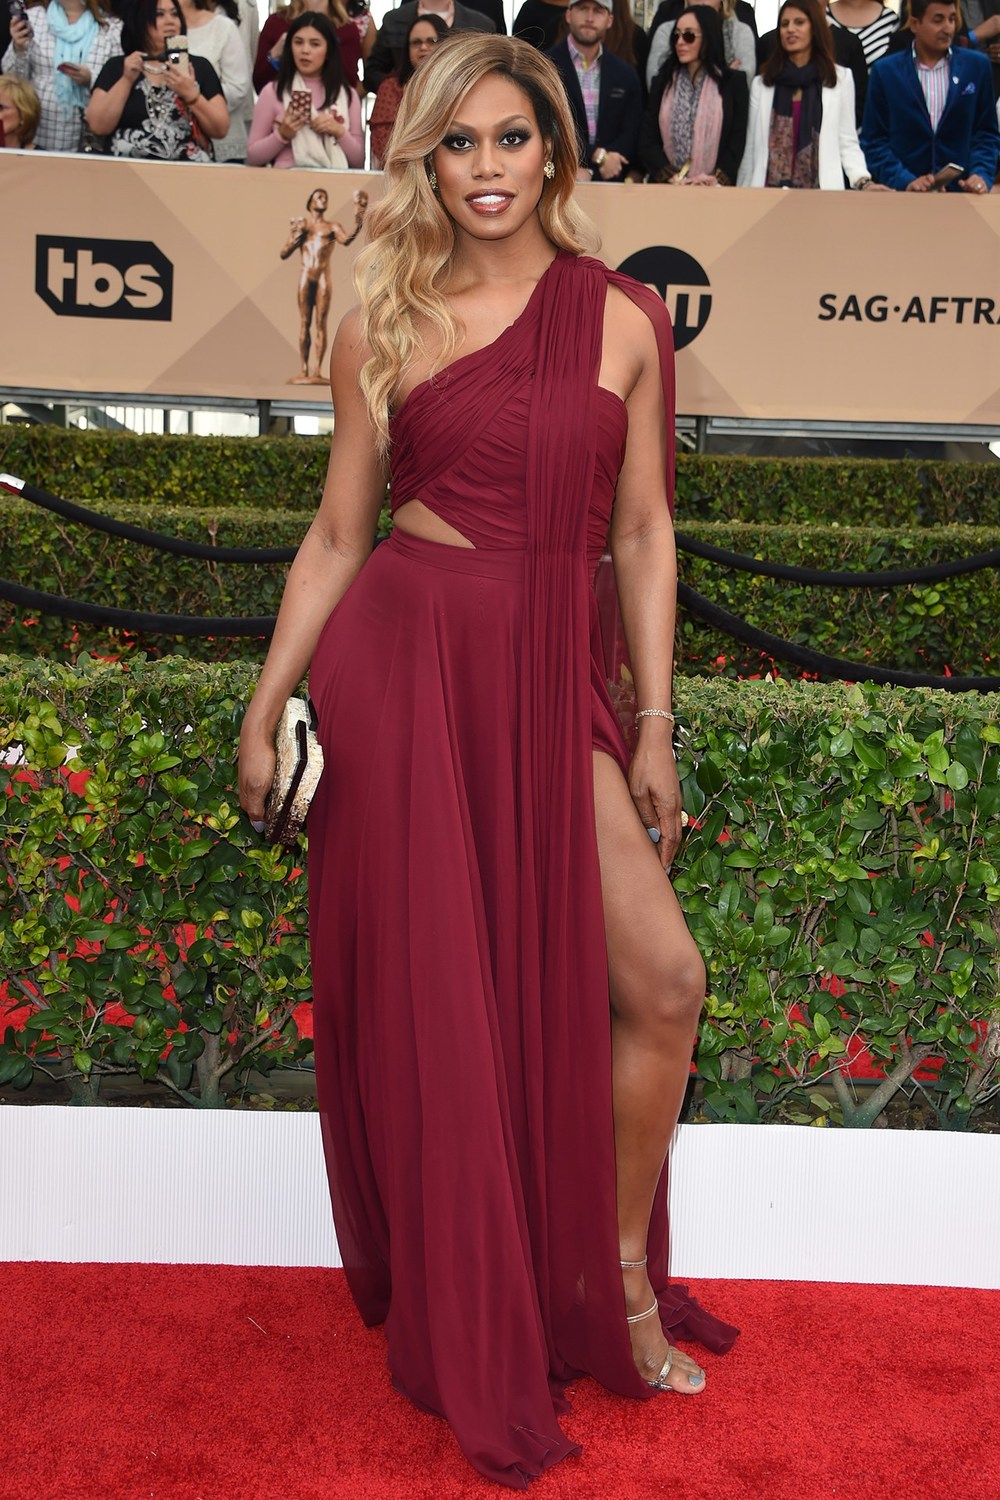 Laverne Cox looking sassy as ever. On POINT.